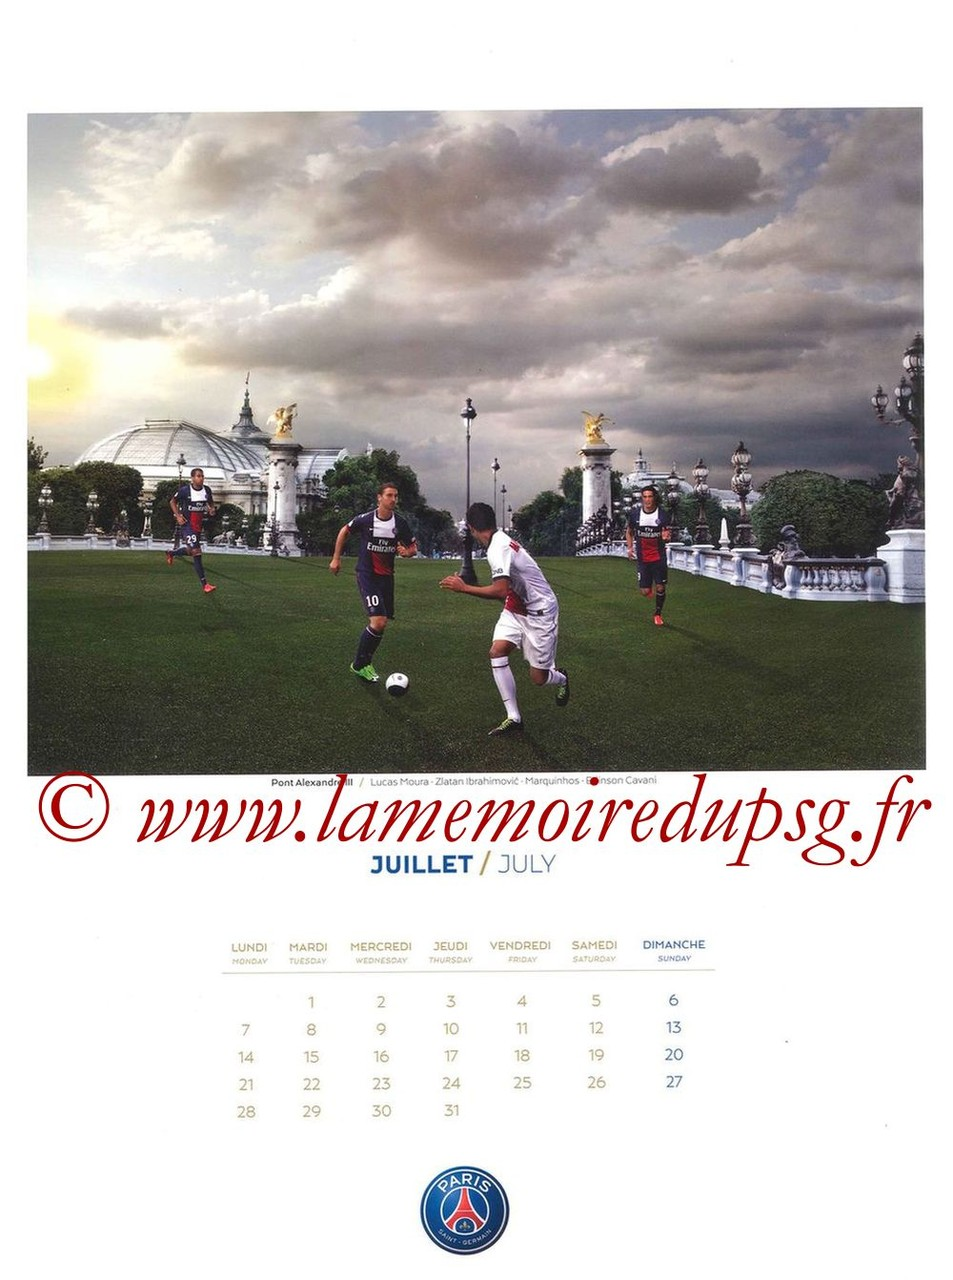 Calendrier PSG 2014 - Page 07 - Pont Alexandre III